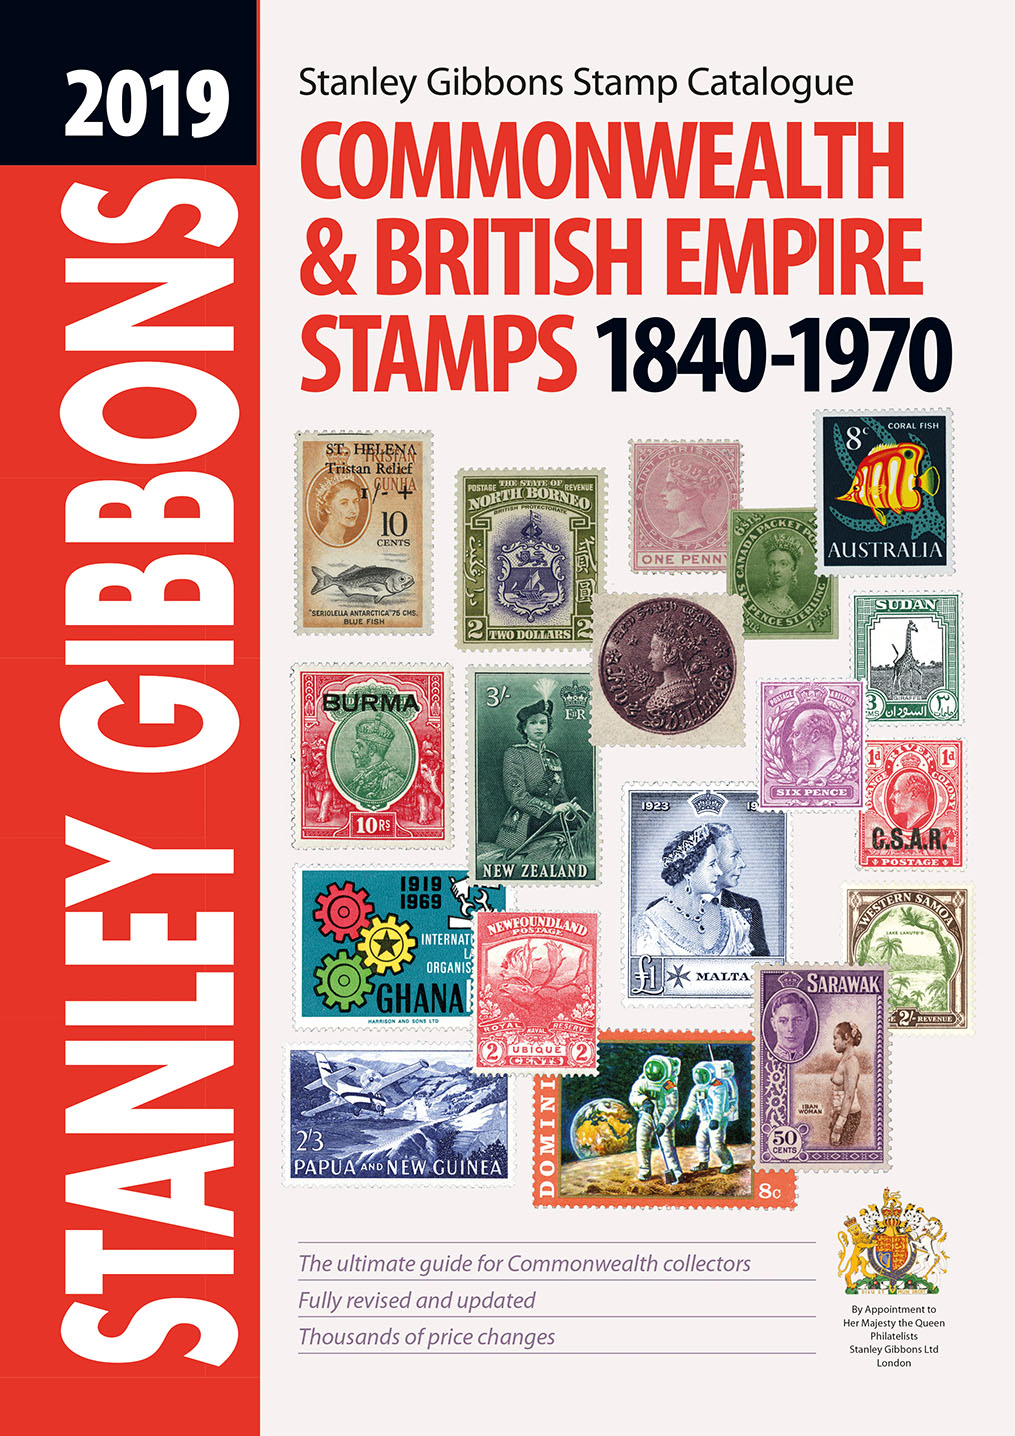 DIGITAL VERSION - 2019 CW & British Empire Stamp Catalogue